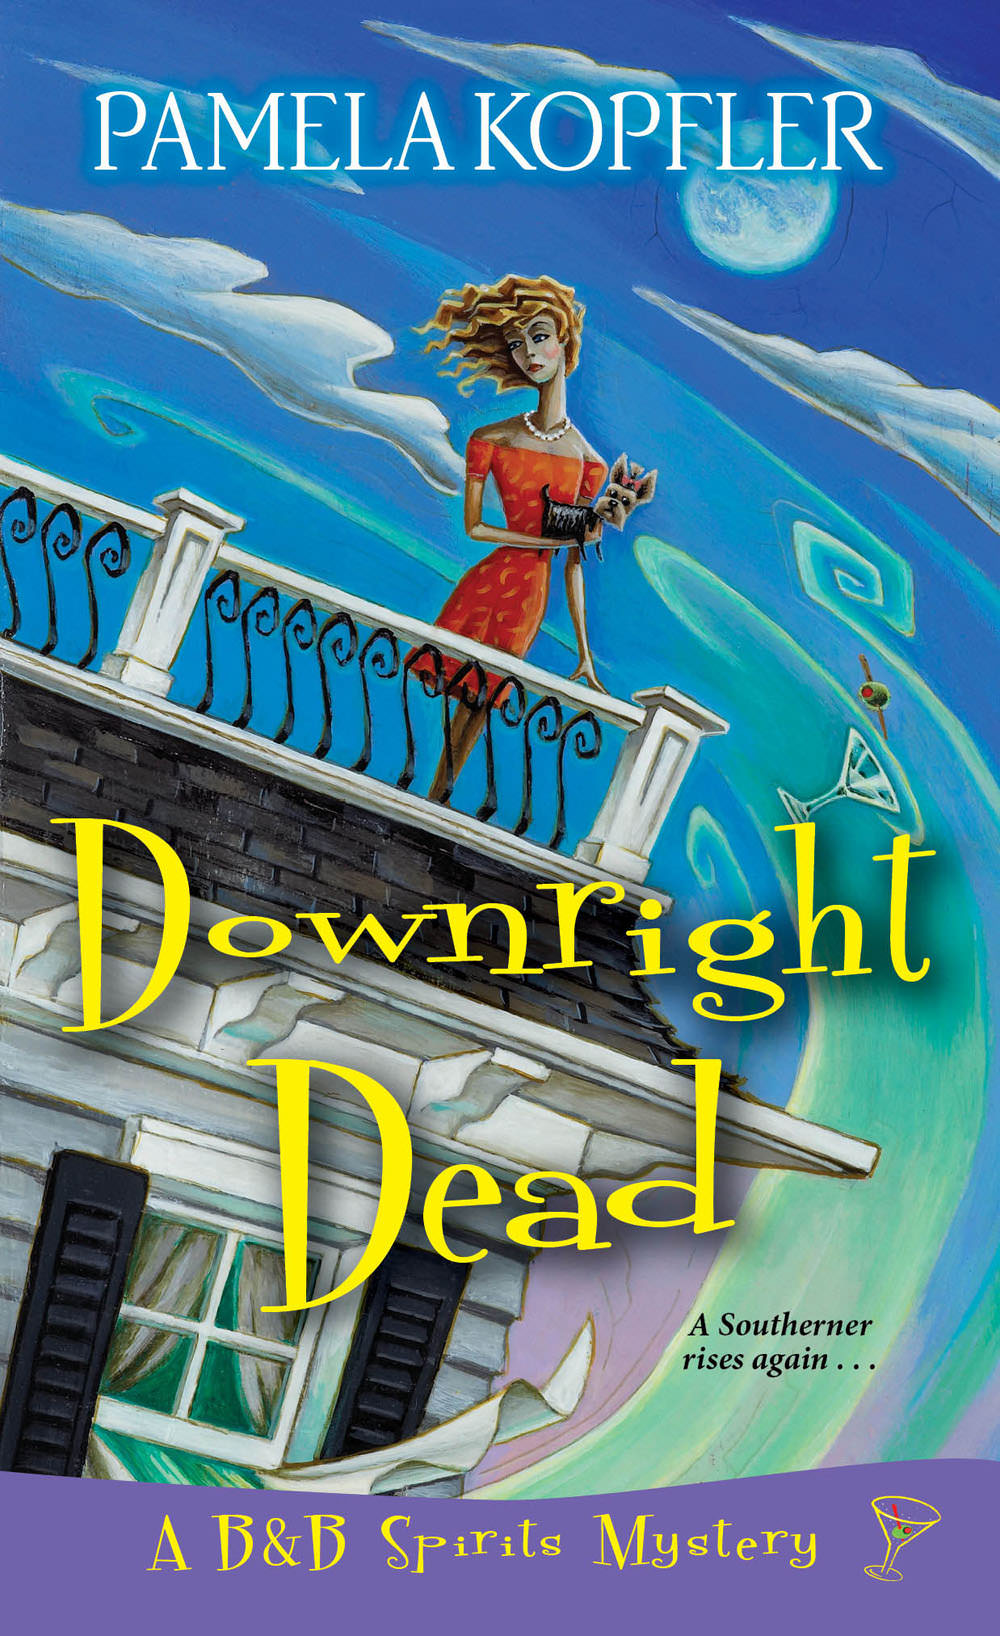 Downright Dead - TZ490a